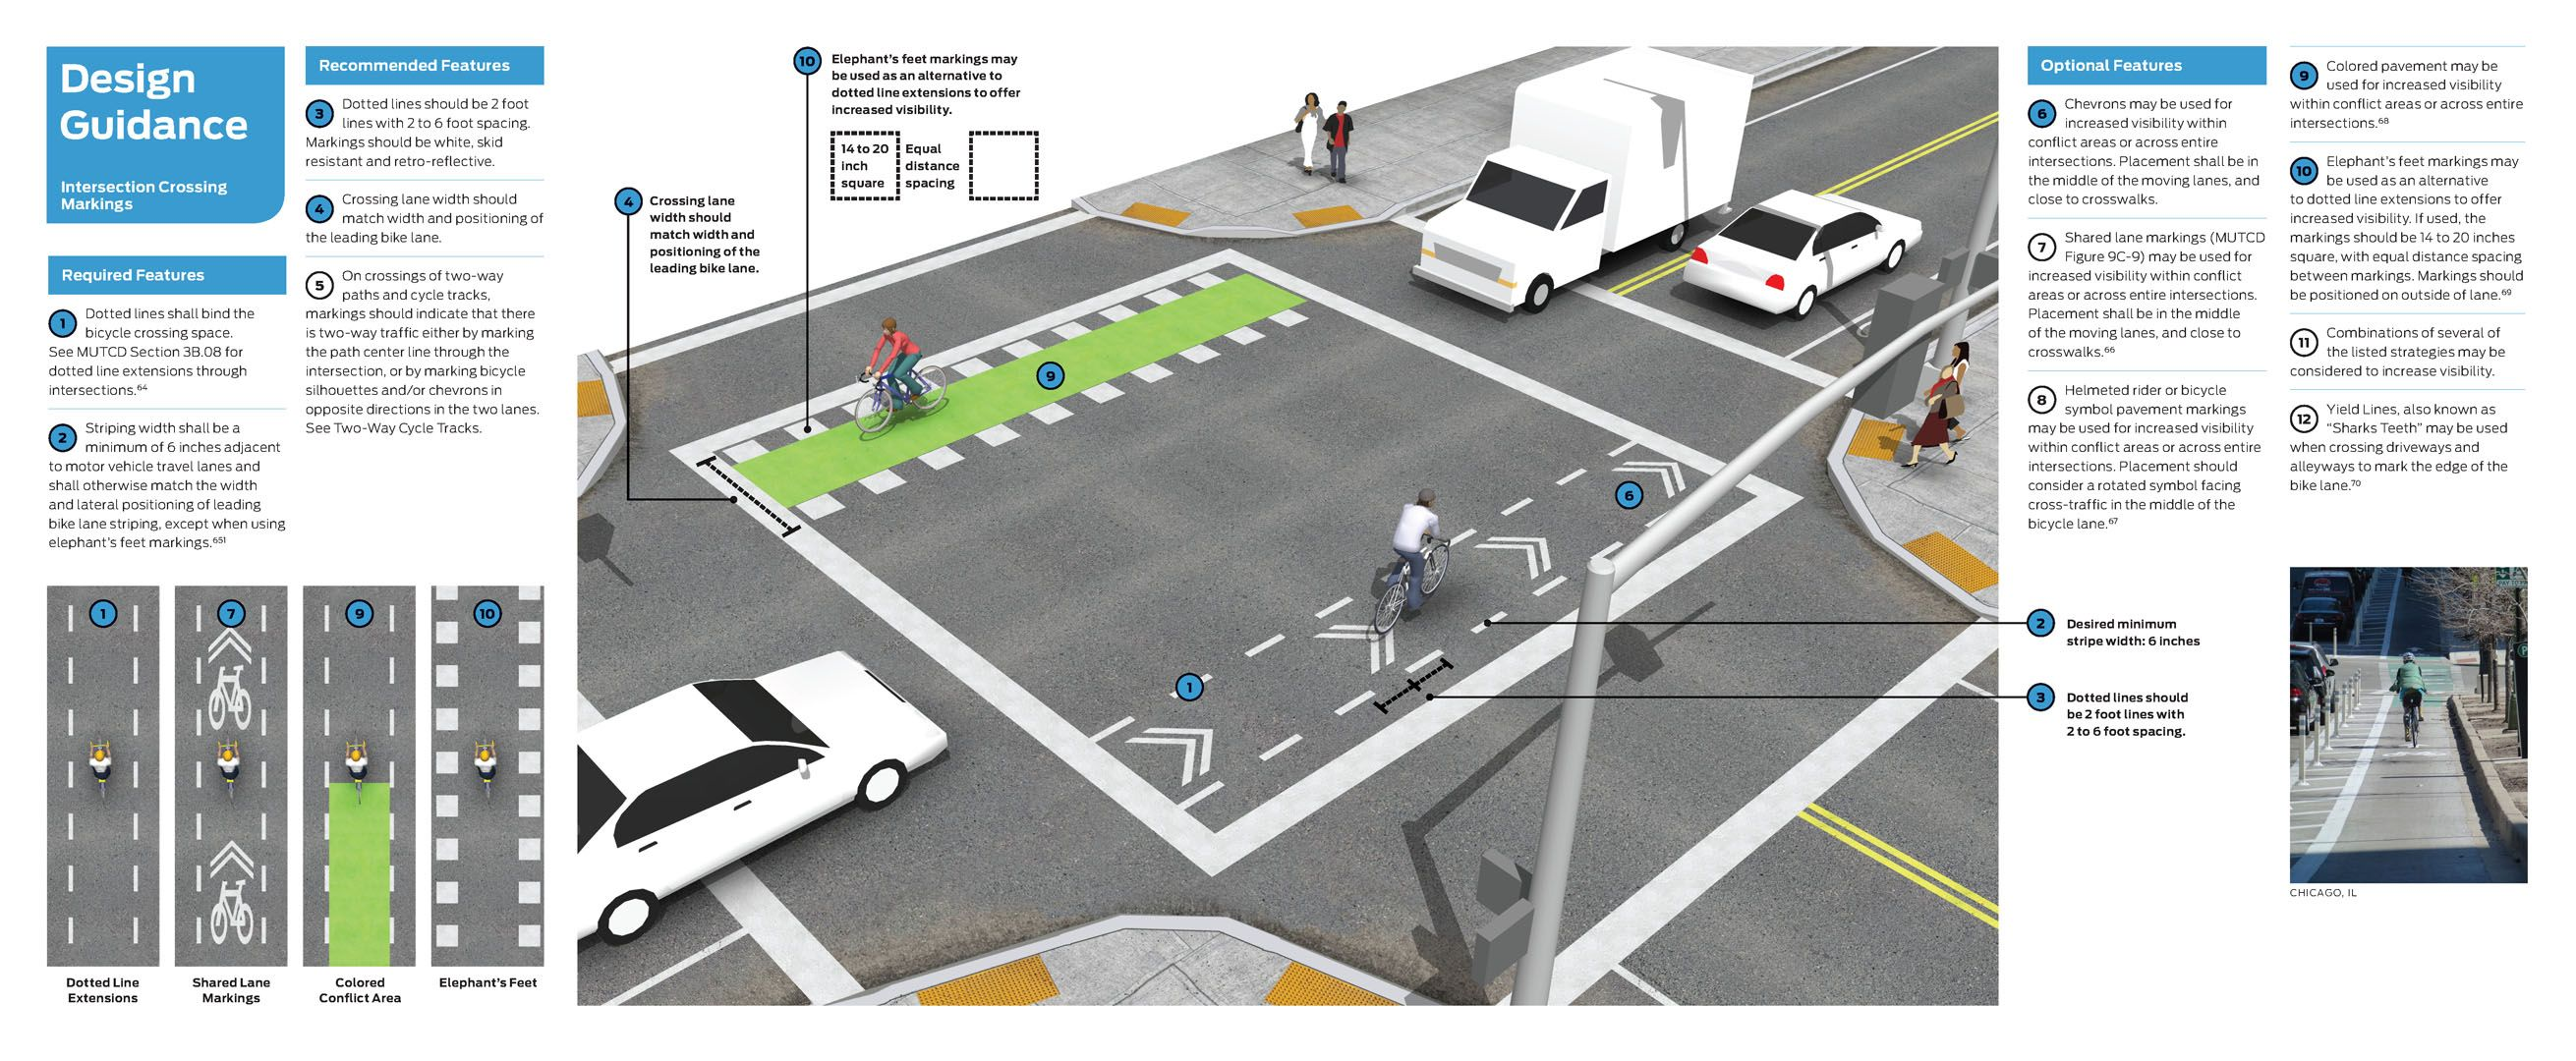 Stop Lines At Intersections Are Designed To